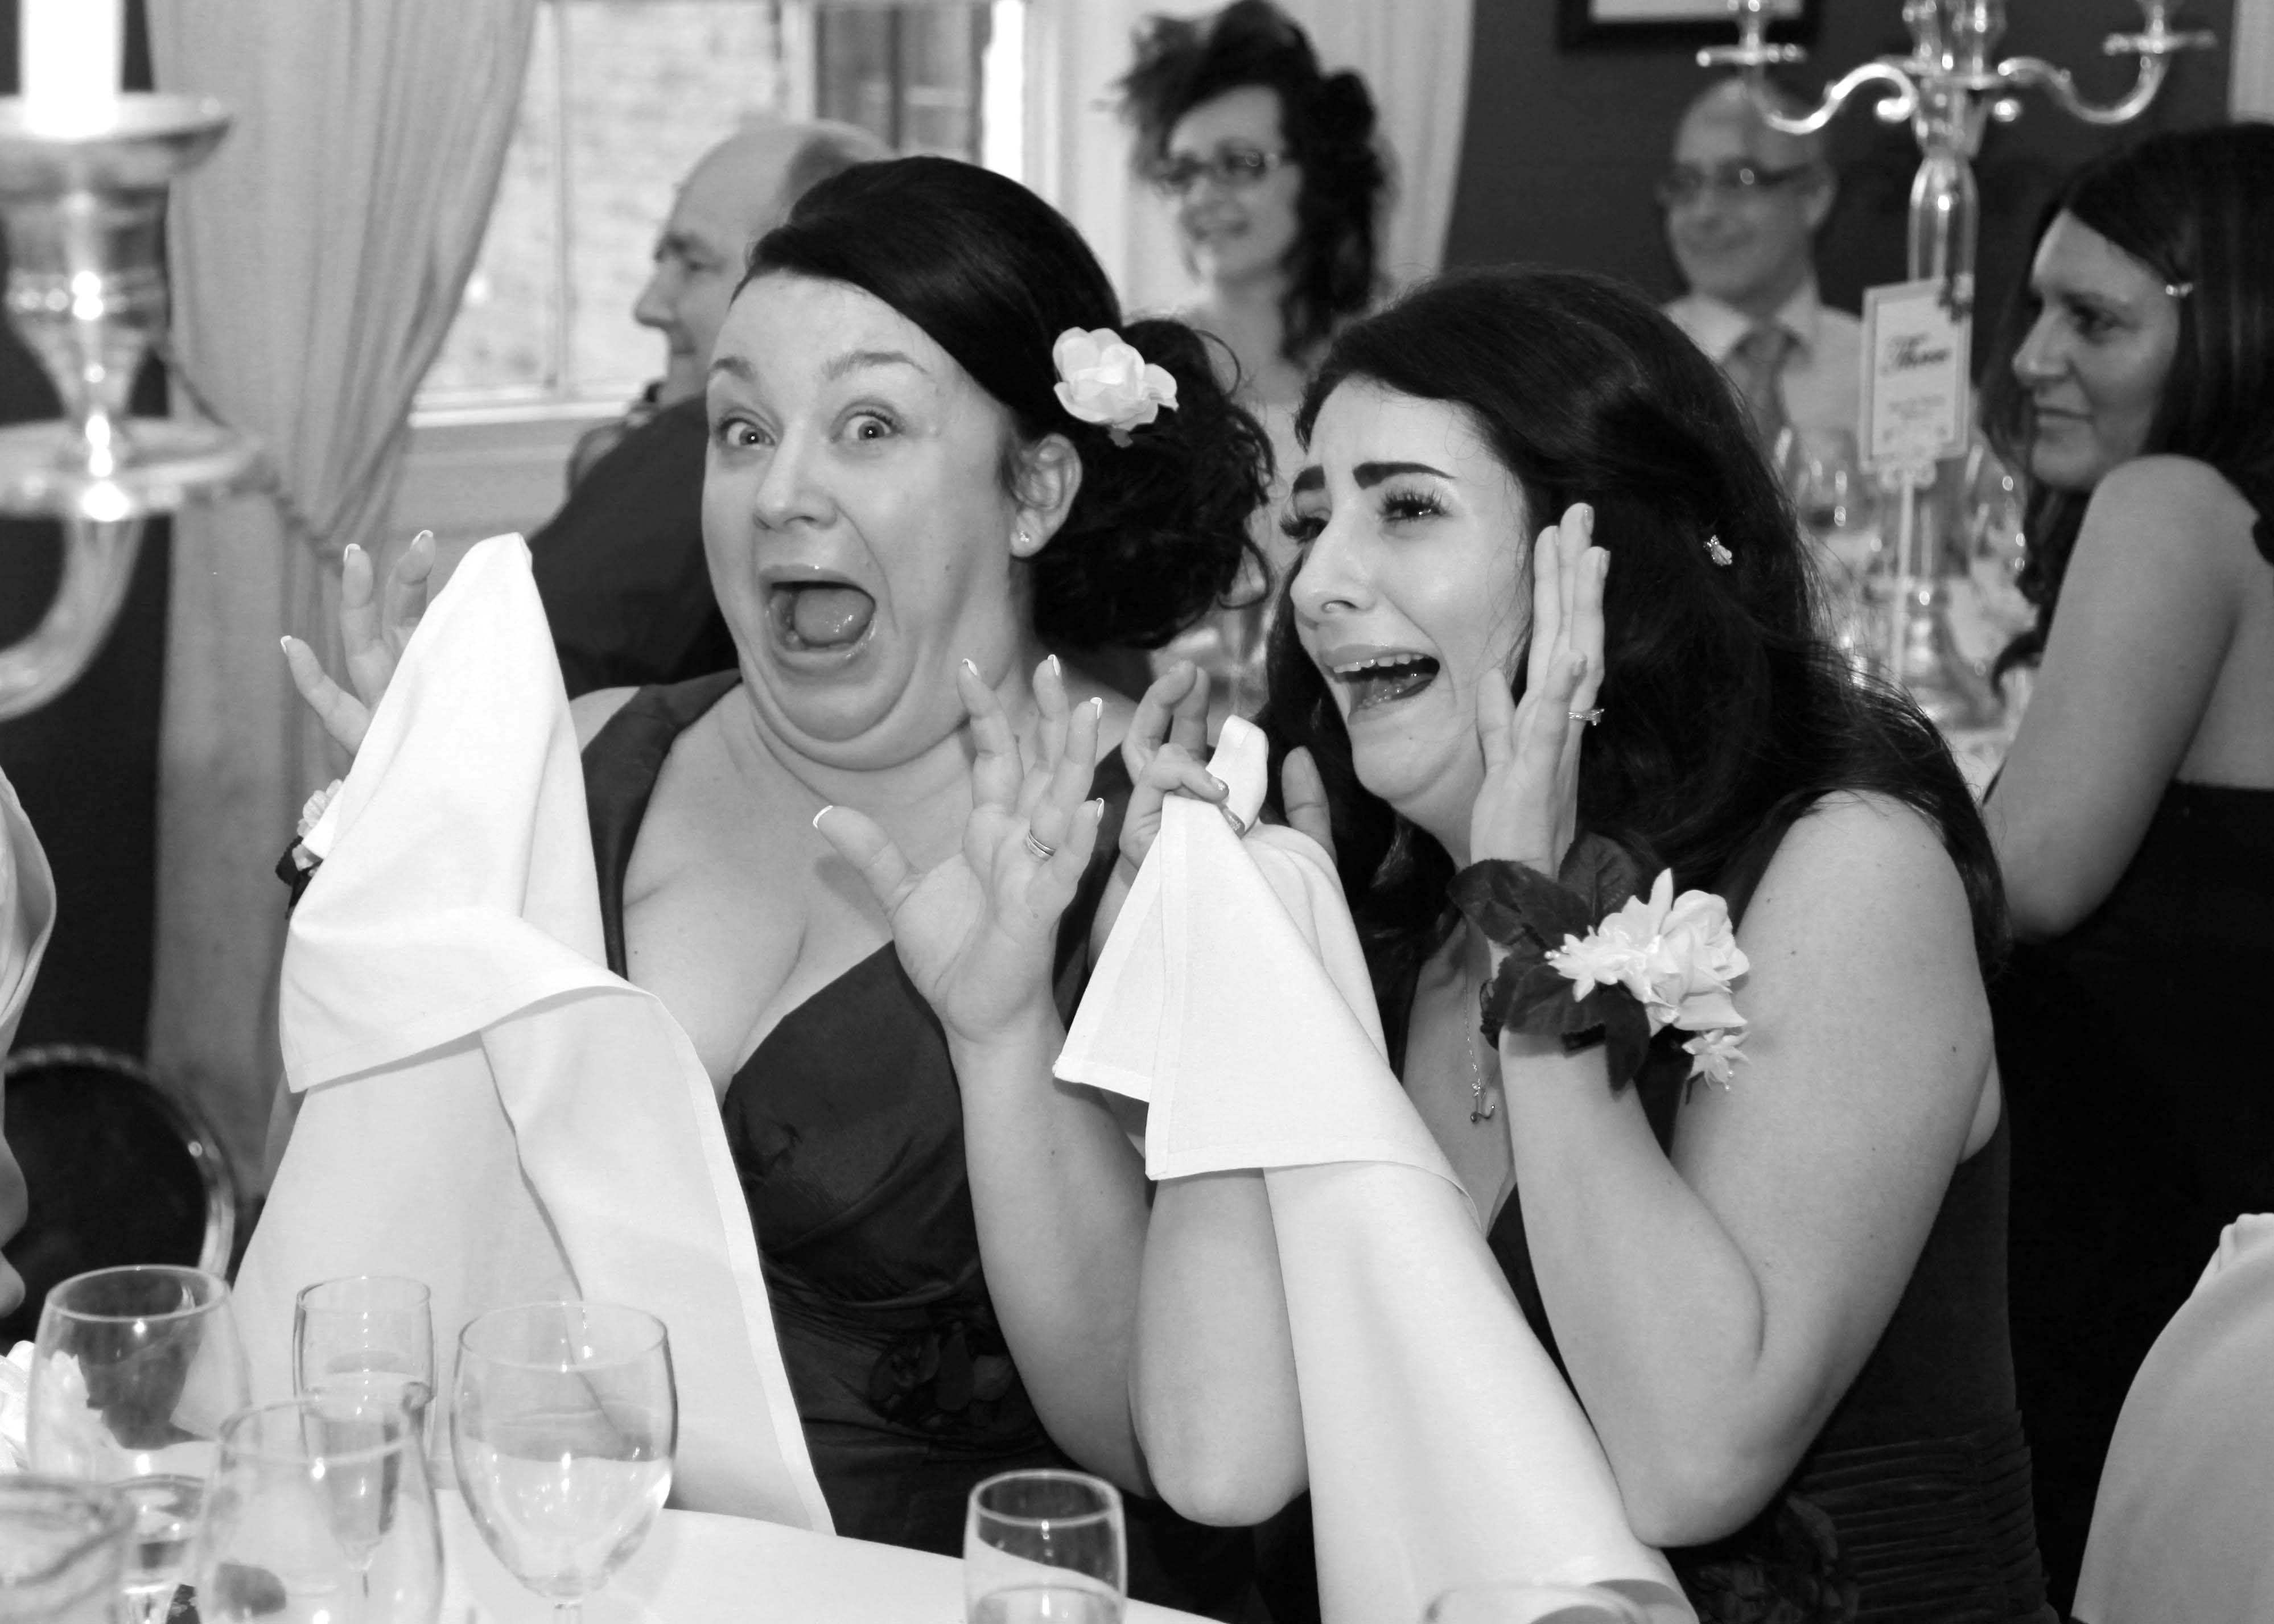 Fun Relaxed Black And White Wedding Photography At Rowley Manor By Leading Social Photographer Stephen Armishaw